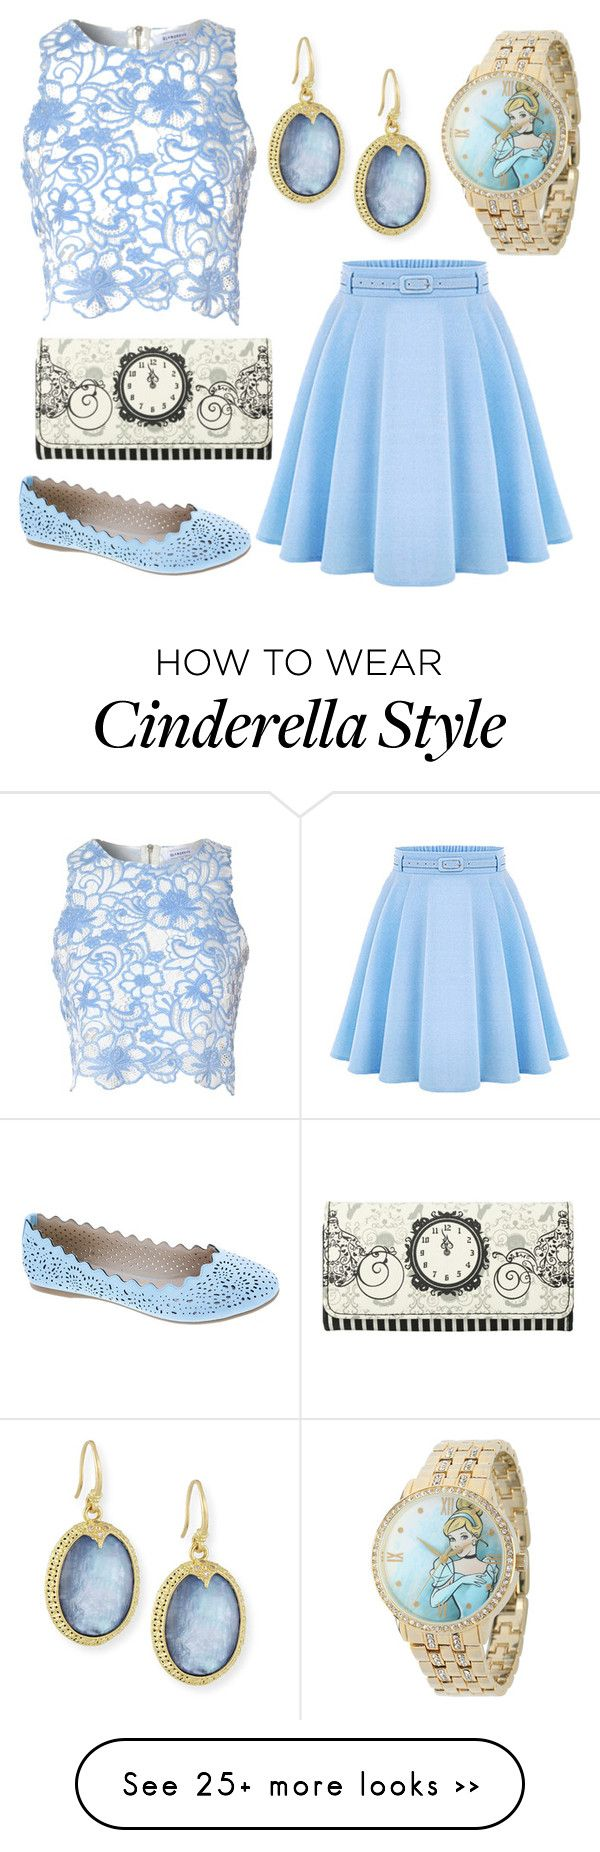 """Disneybound: Cinderella"" by swagshark on Polyvore featuring Armenta, Tr"